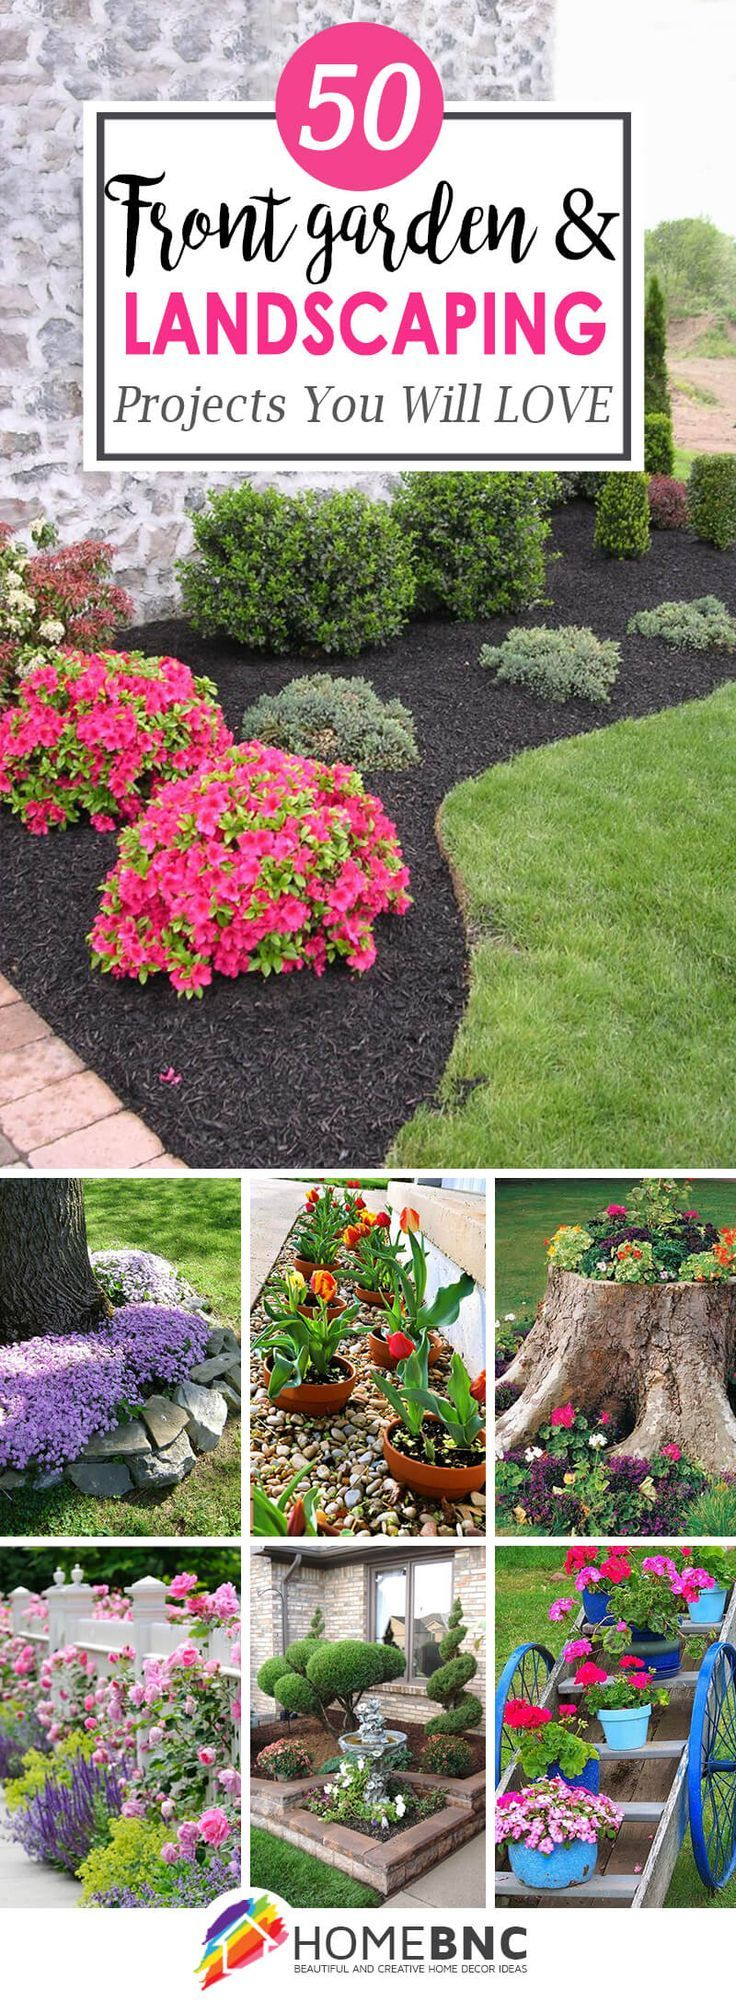 Front Yard Landscaping Tutorial : Best front yard design ideas on